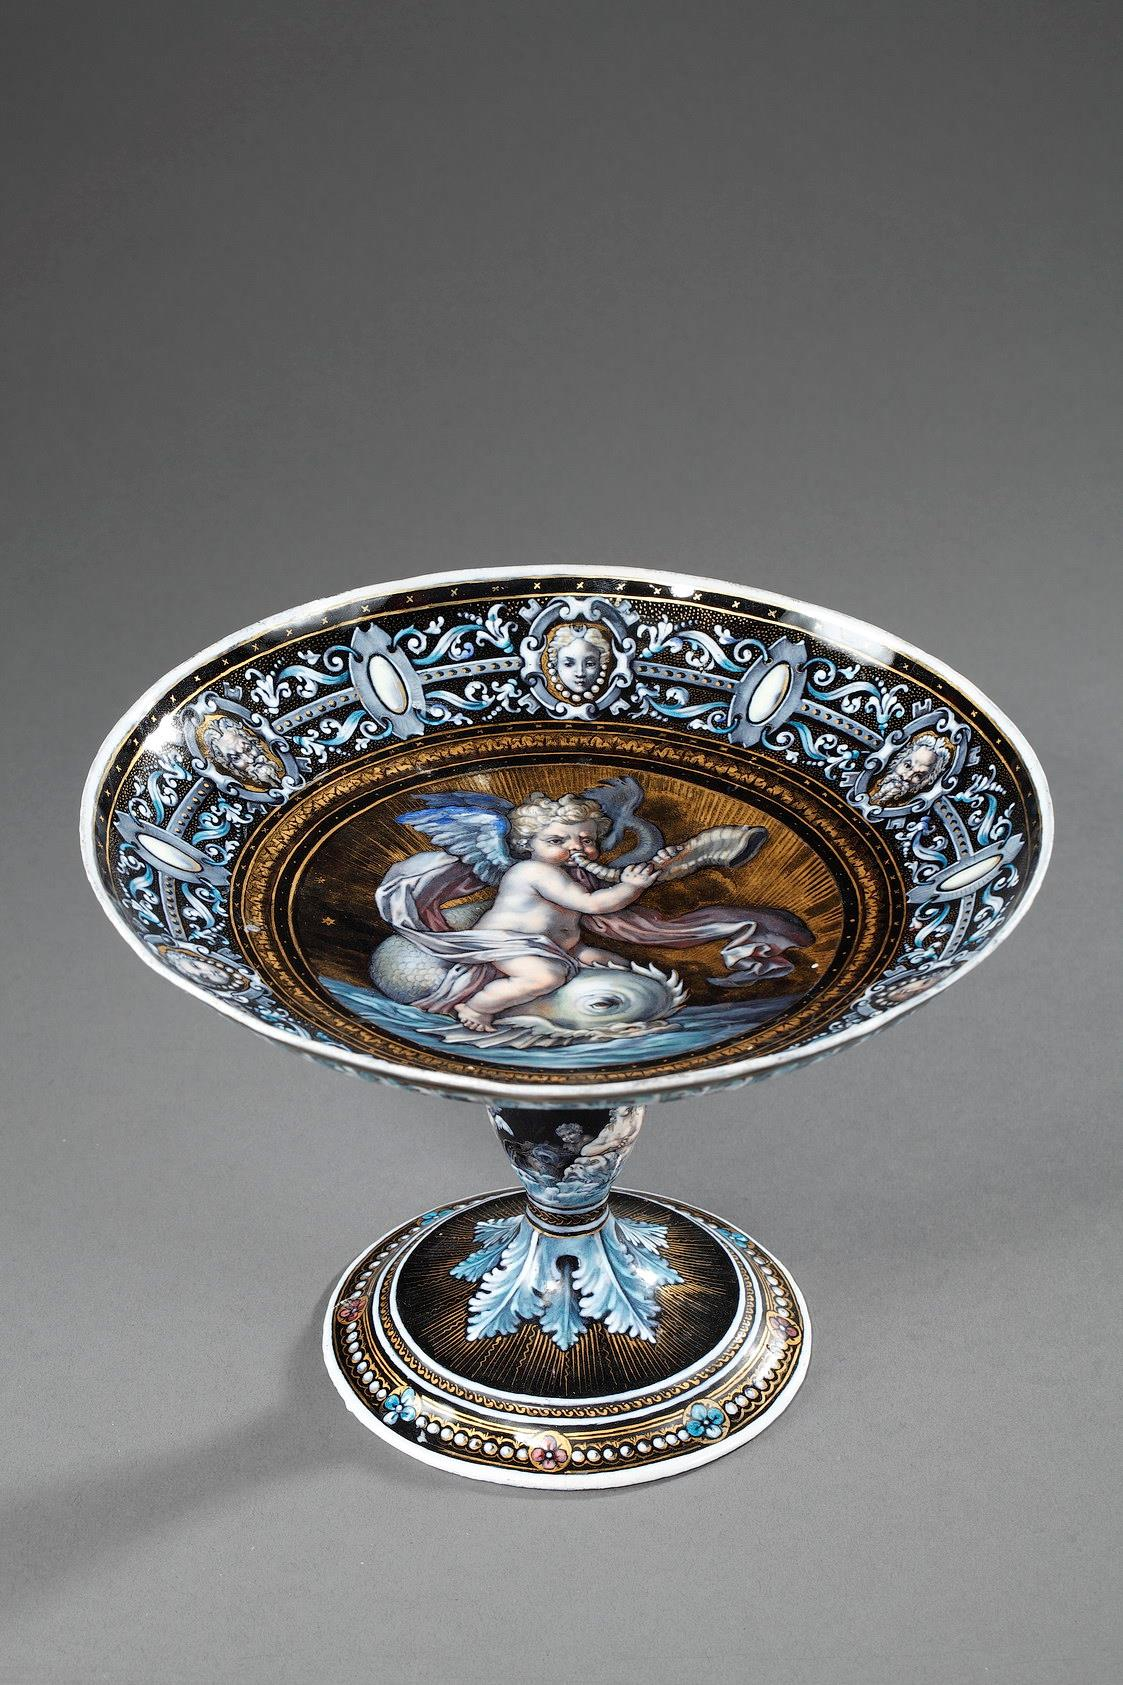 ENAMEL CUP SIGNED SUZANNE ESTELLE APOIL. SEVRES.<br/> MID 19TH CENTURY.